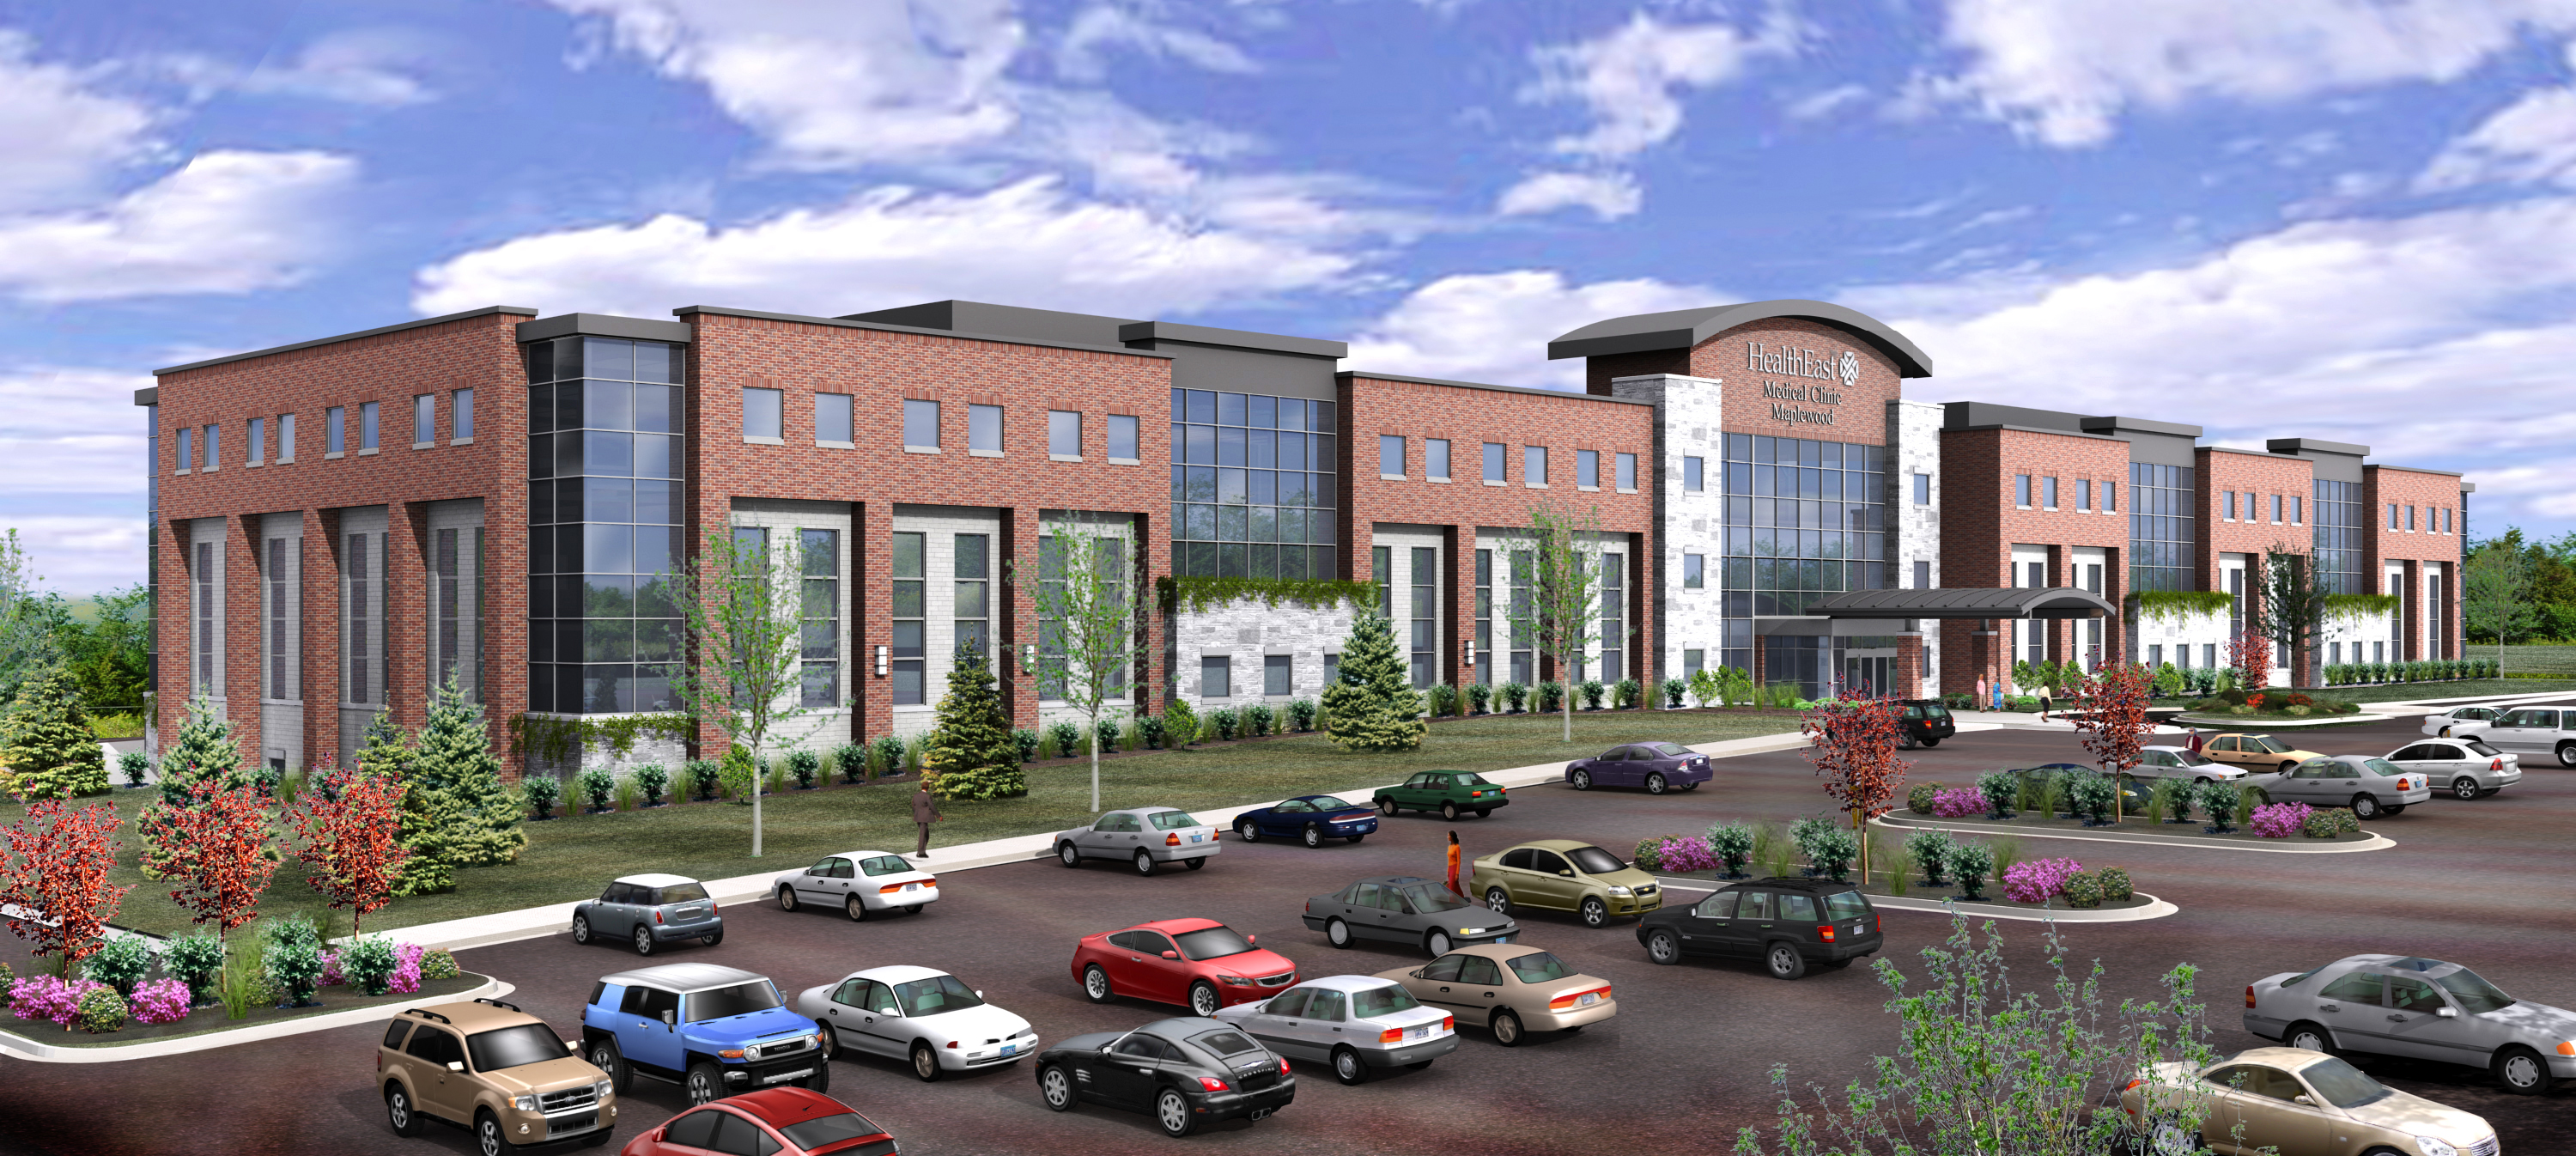 Hazelwood Medical Center in Maplewood, MN with expansion